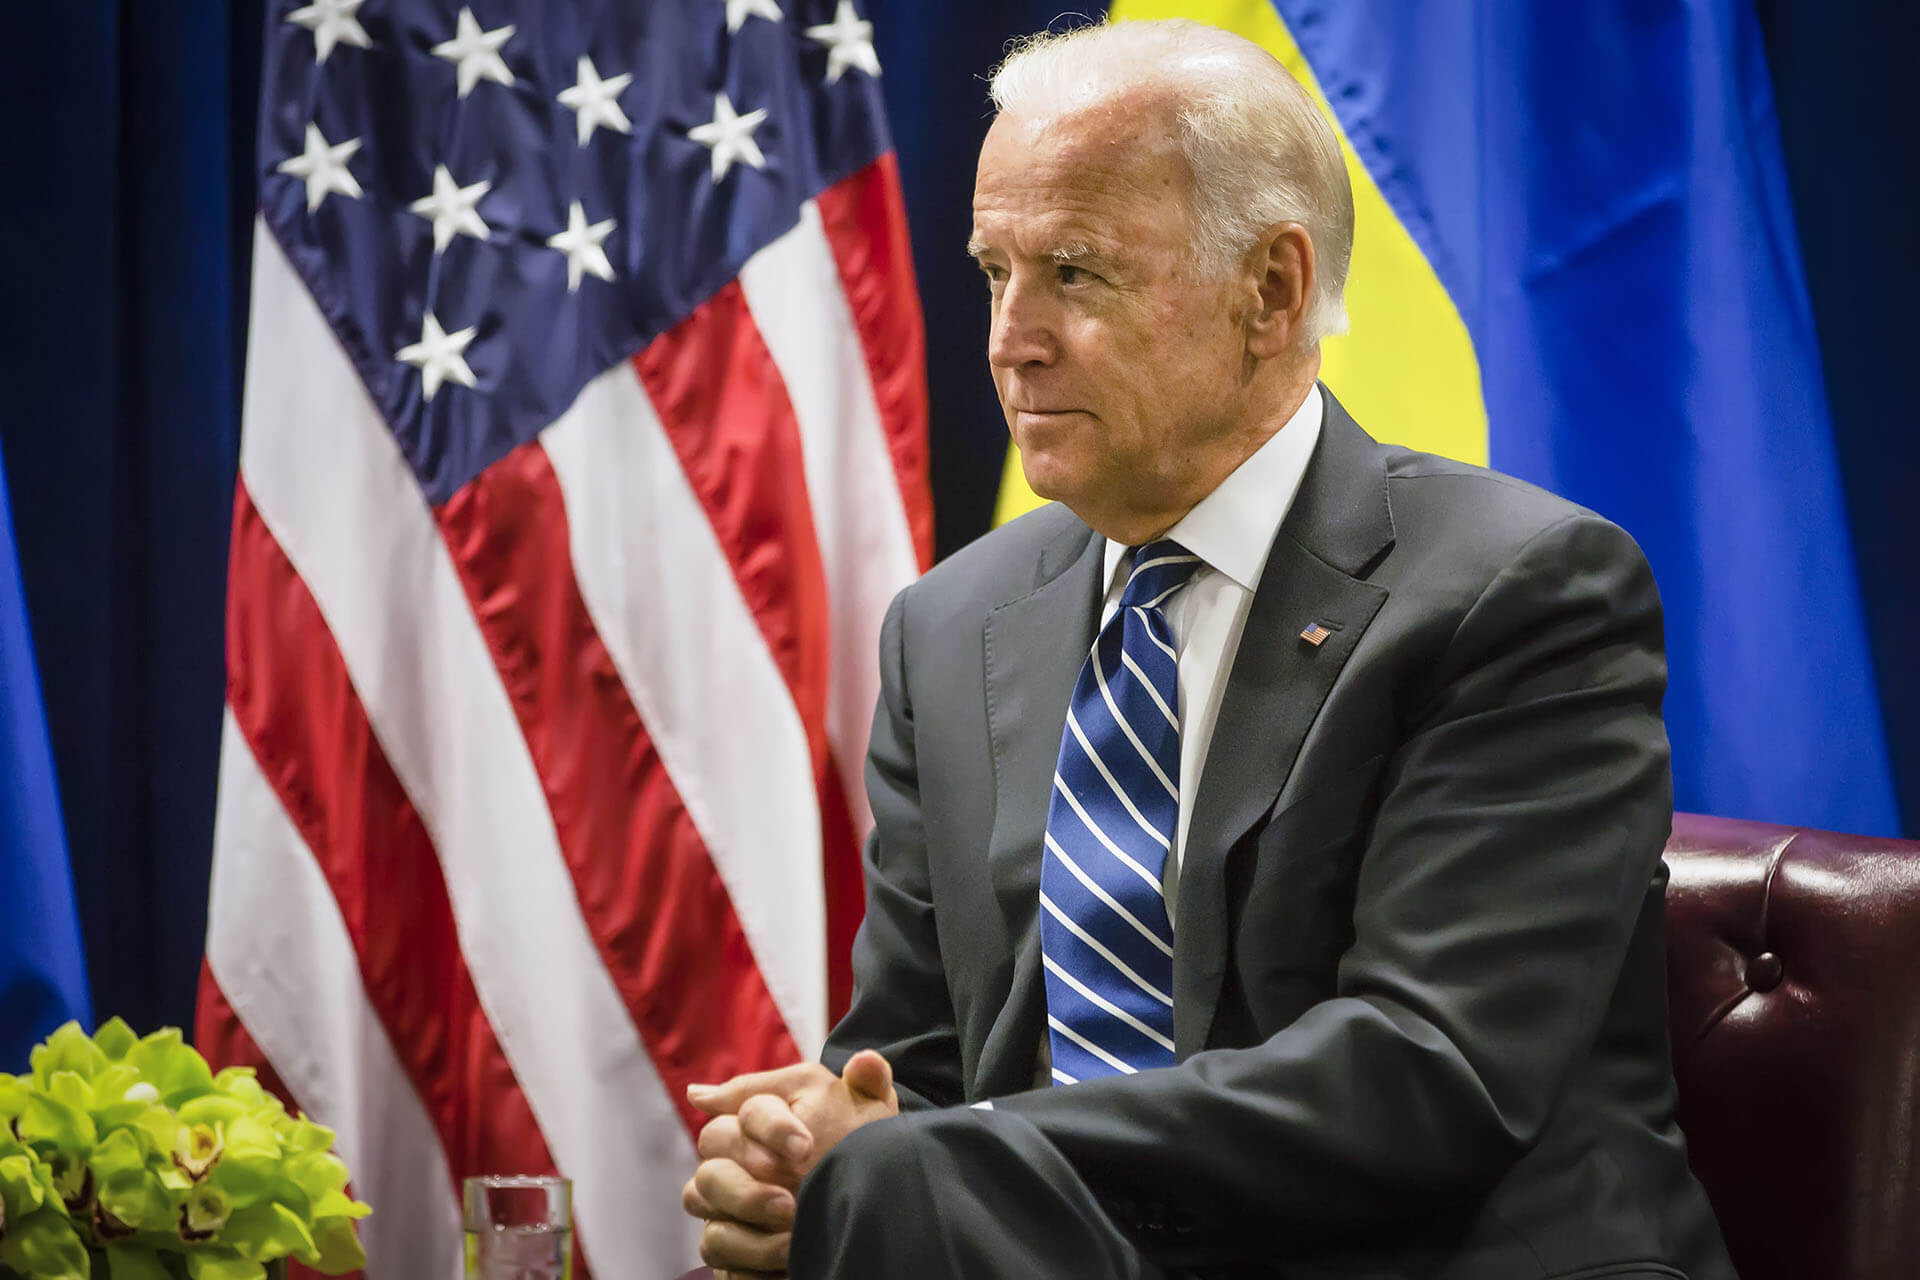 US: Biden Issues Memo Withdrawing the H-4 EAD Rescission Rule